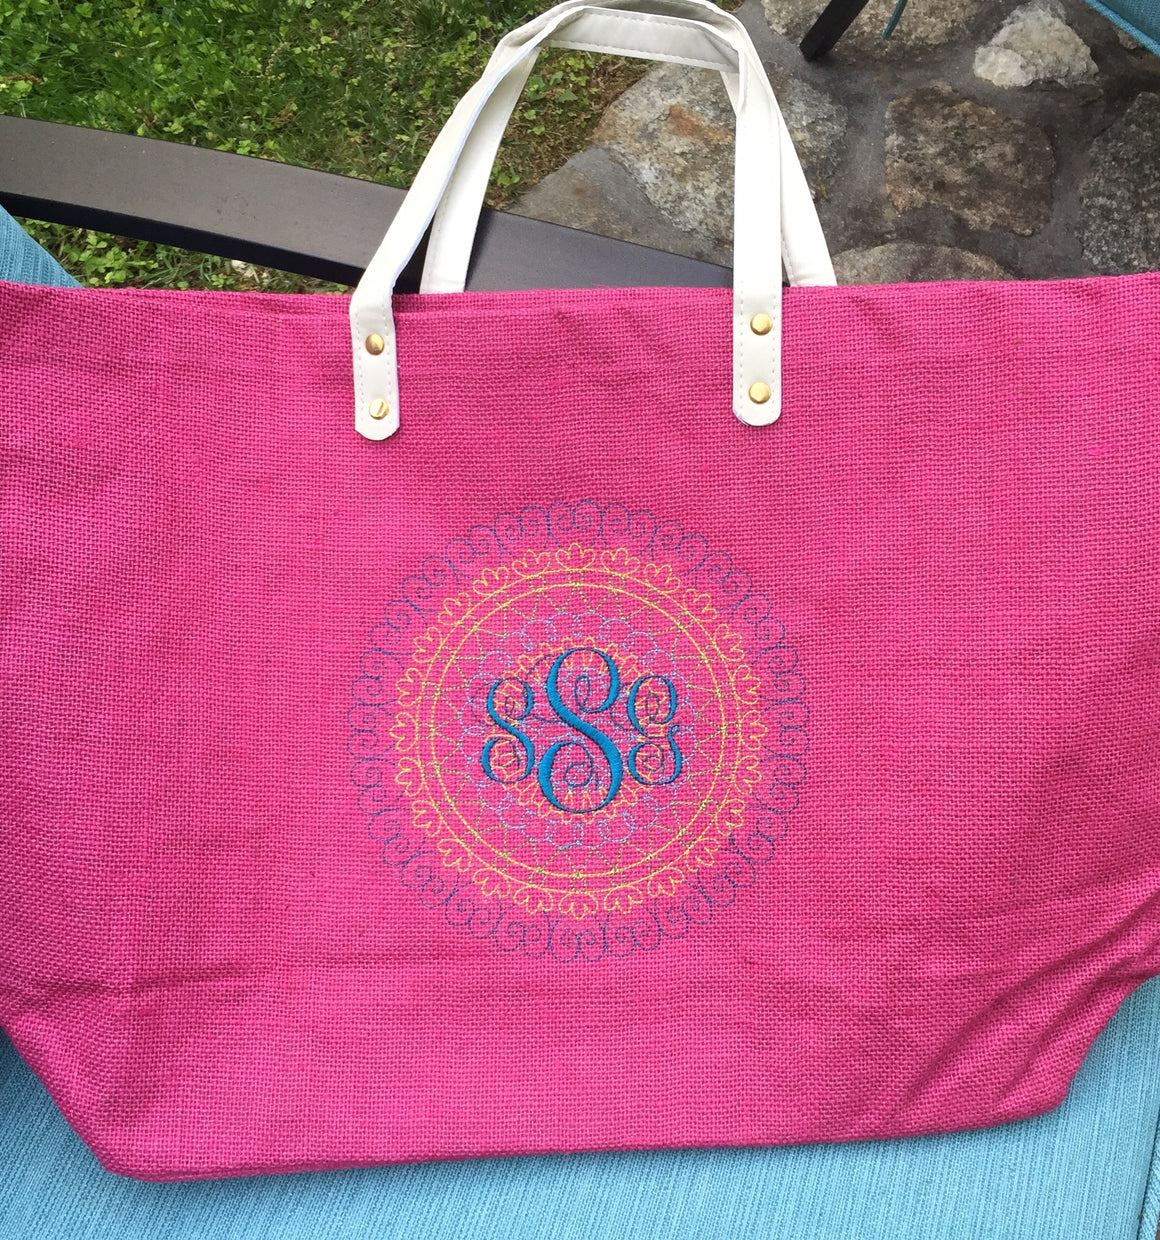 Monogrammed Personalized Shopping Tote Purse Jute Burlap Rafia